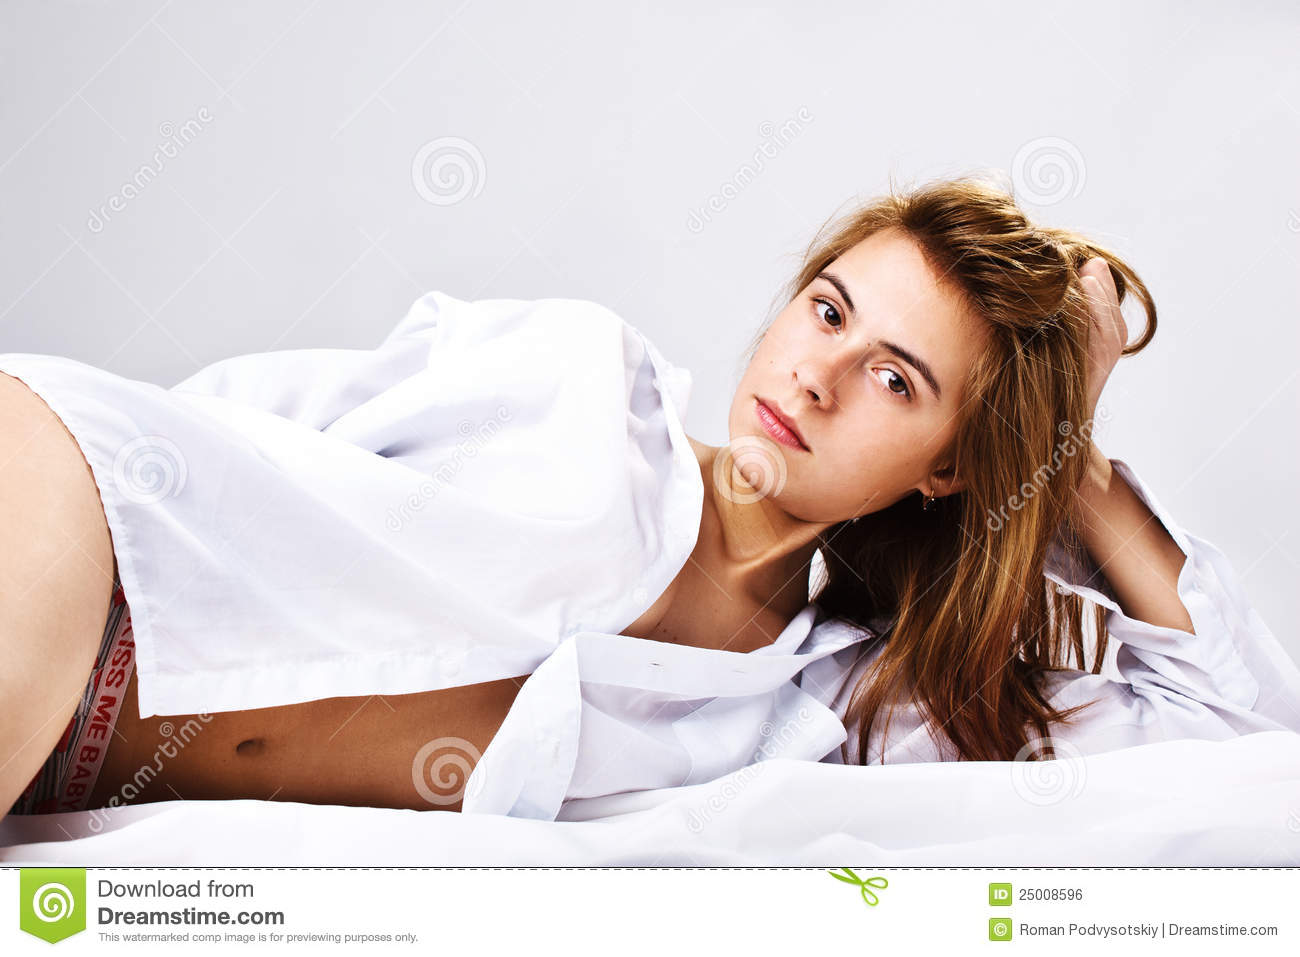 Woman In A White Men's Shirt Stock Photos - Image: 25008653